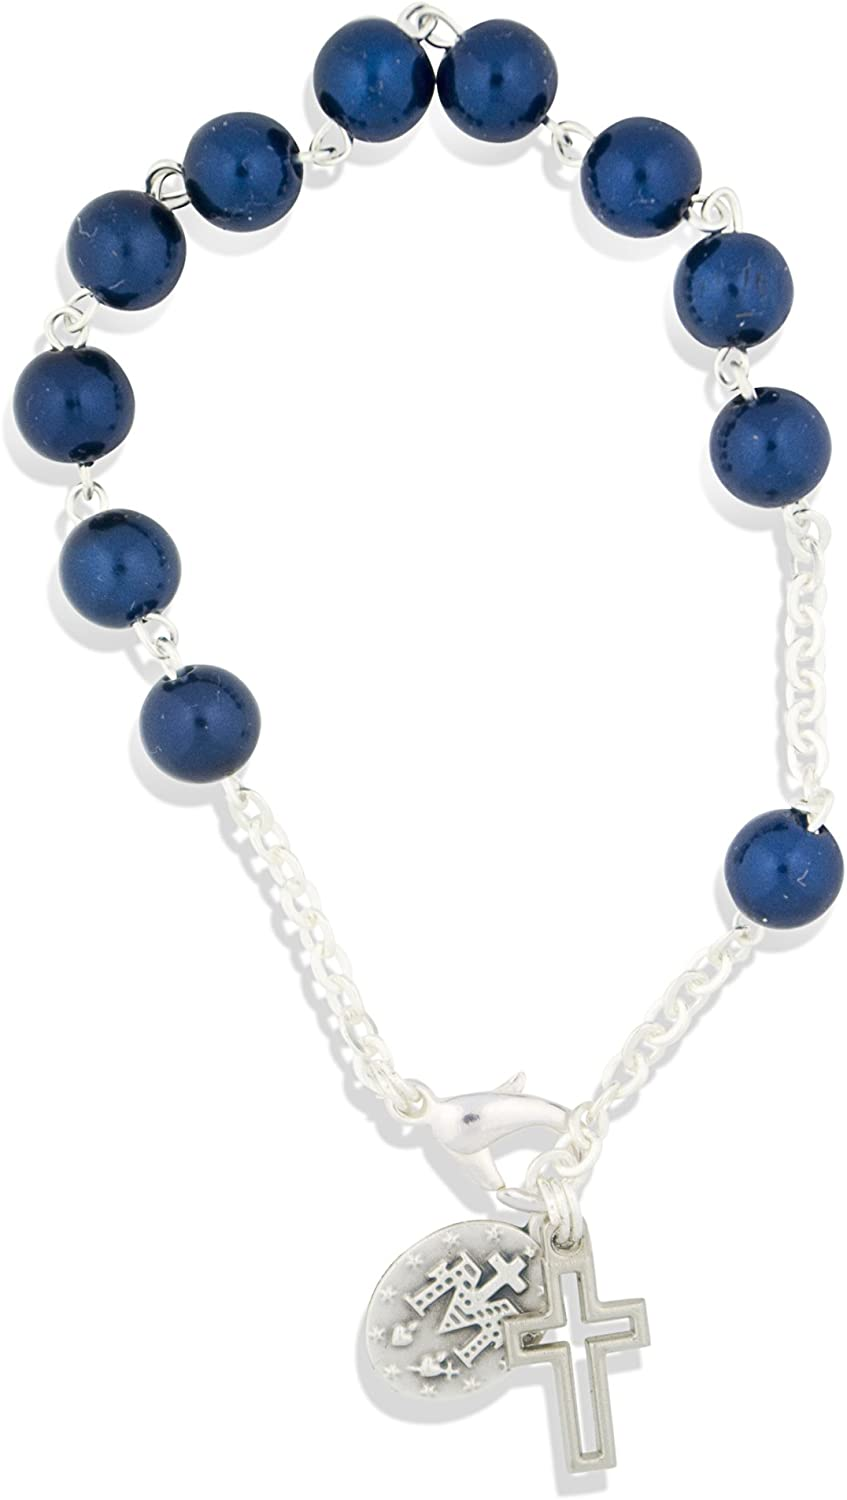 Vatican Imports New popularity Minneapolis Mall Colorful and Fun One Decade Bracelet - 12 Rosary